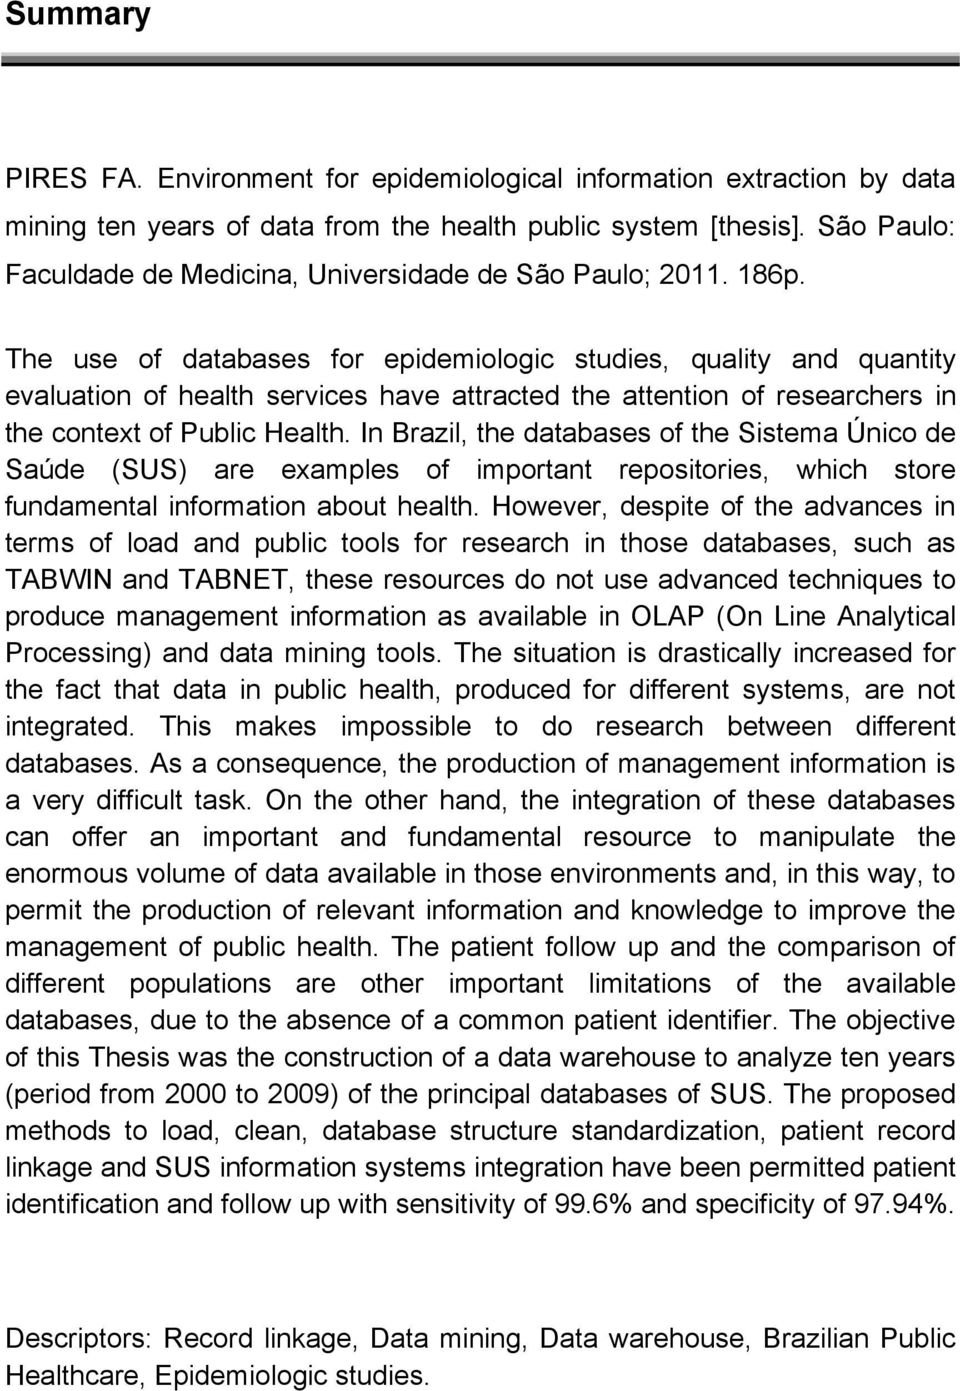 The use of databases for epidemiologic studies, quality and quantity evaluation of health services have attracted the attention of researchers in the context of Public Health.